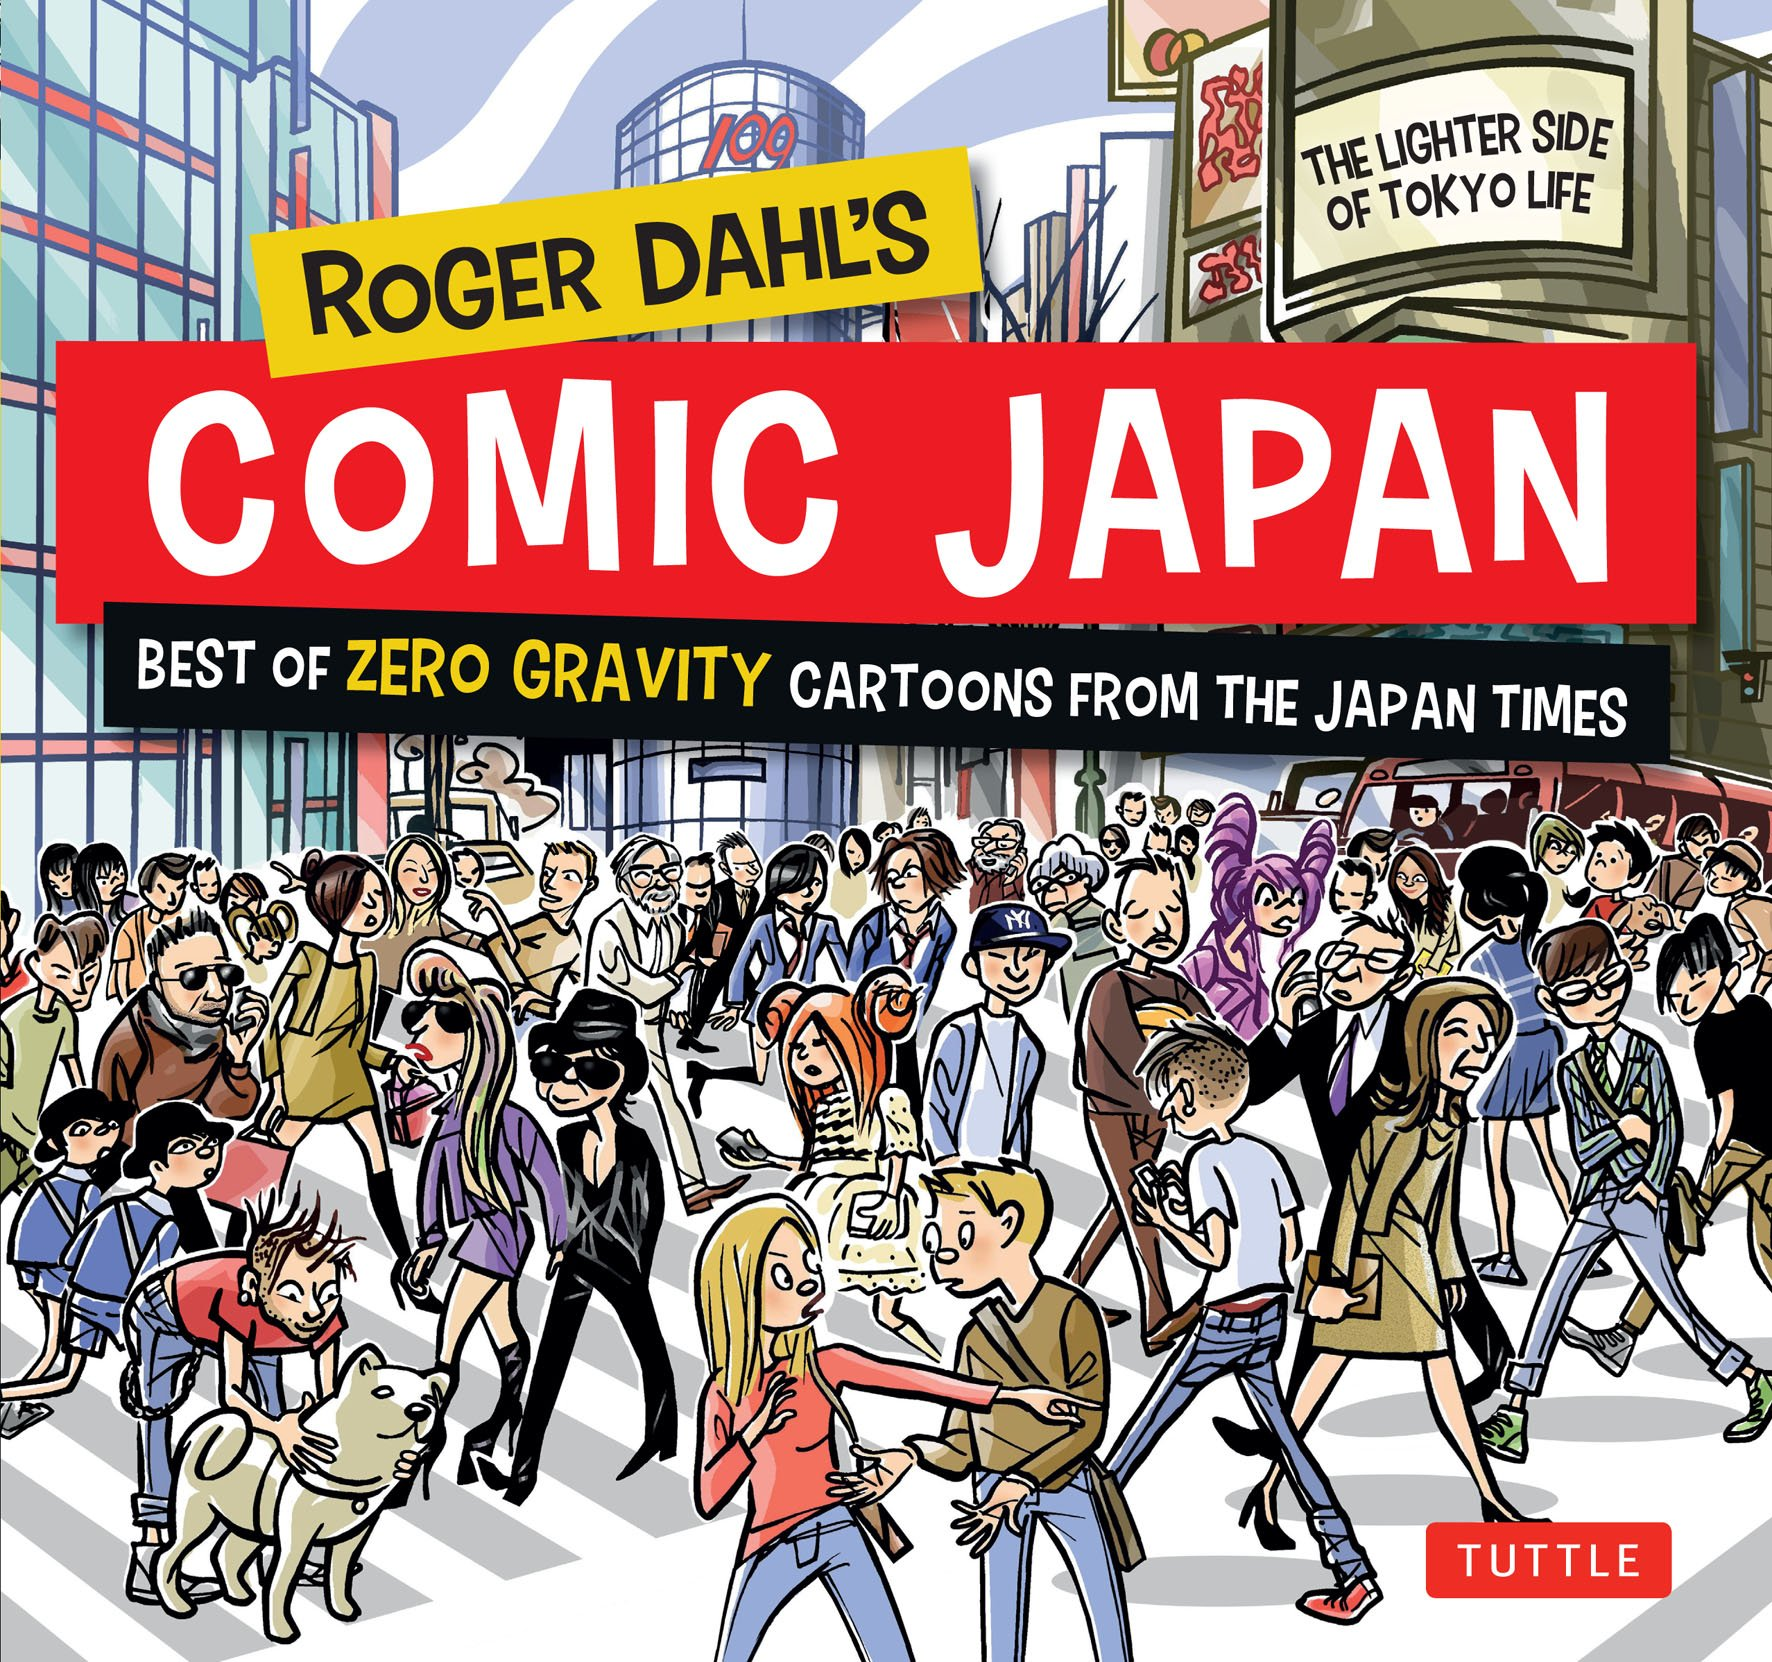 Roger Dahl's Comic Japan  The Best Of Zero Gravity Cartoons From The Japan Times The Lighter Side Of Tokyo Life